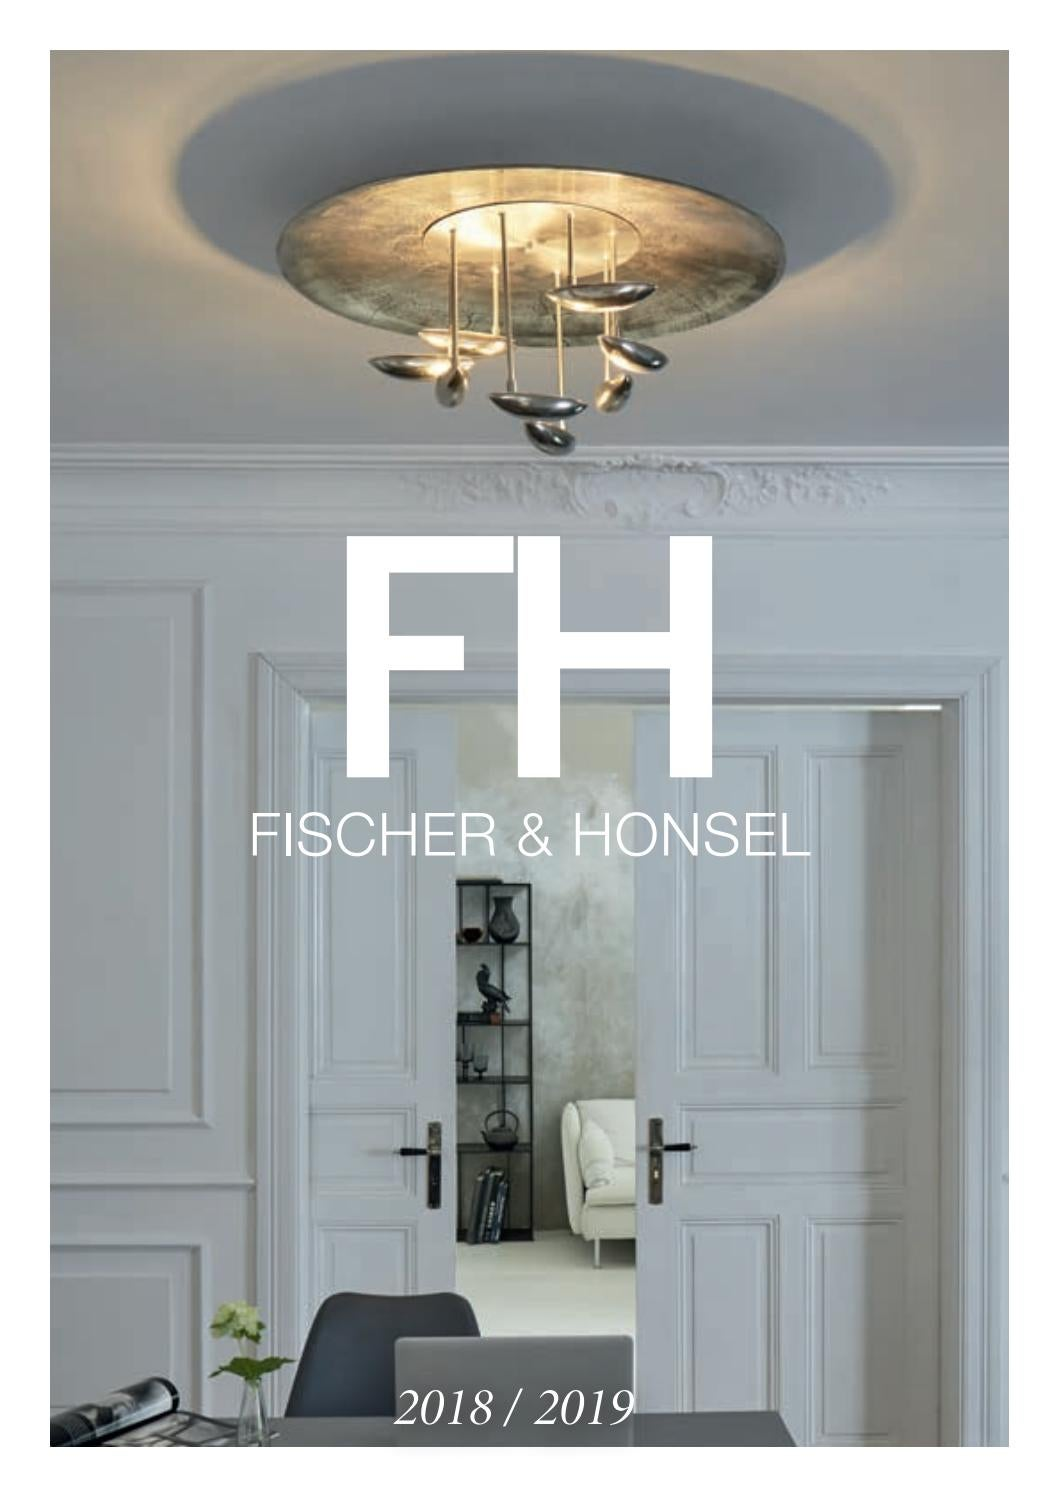 Fischer Honsel 2019 By Provara Lighting Issuu